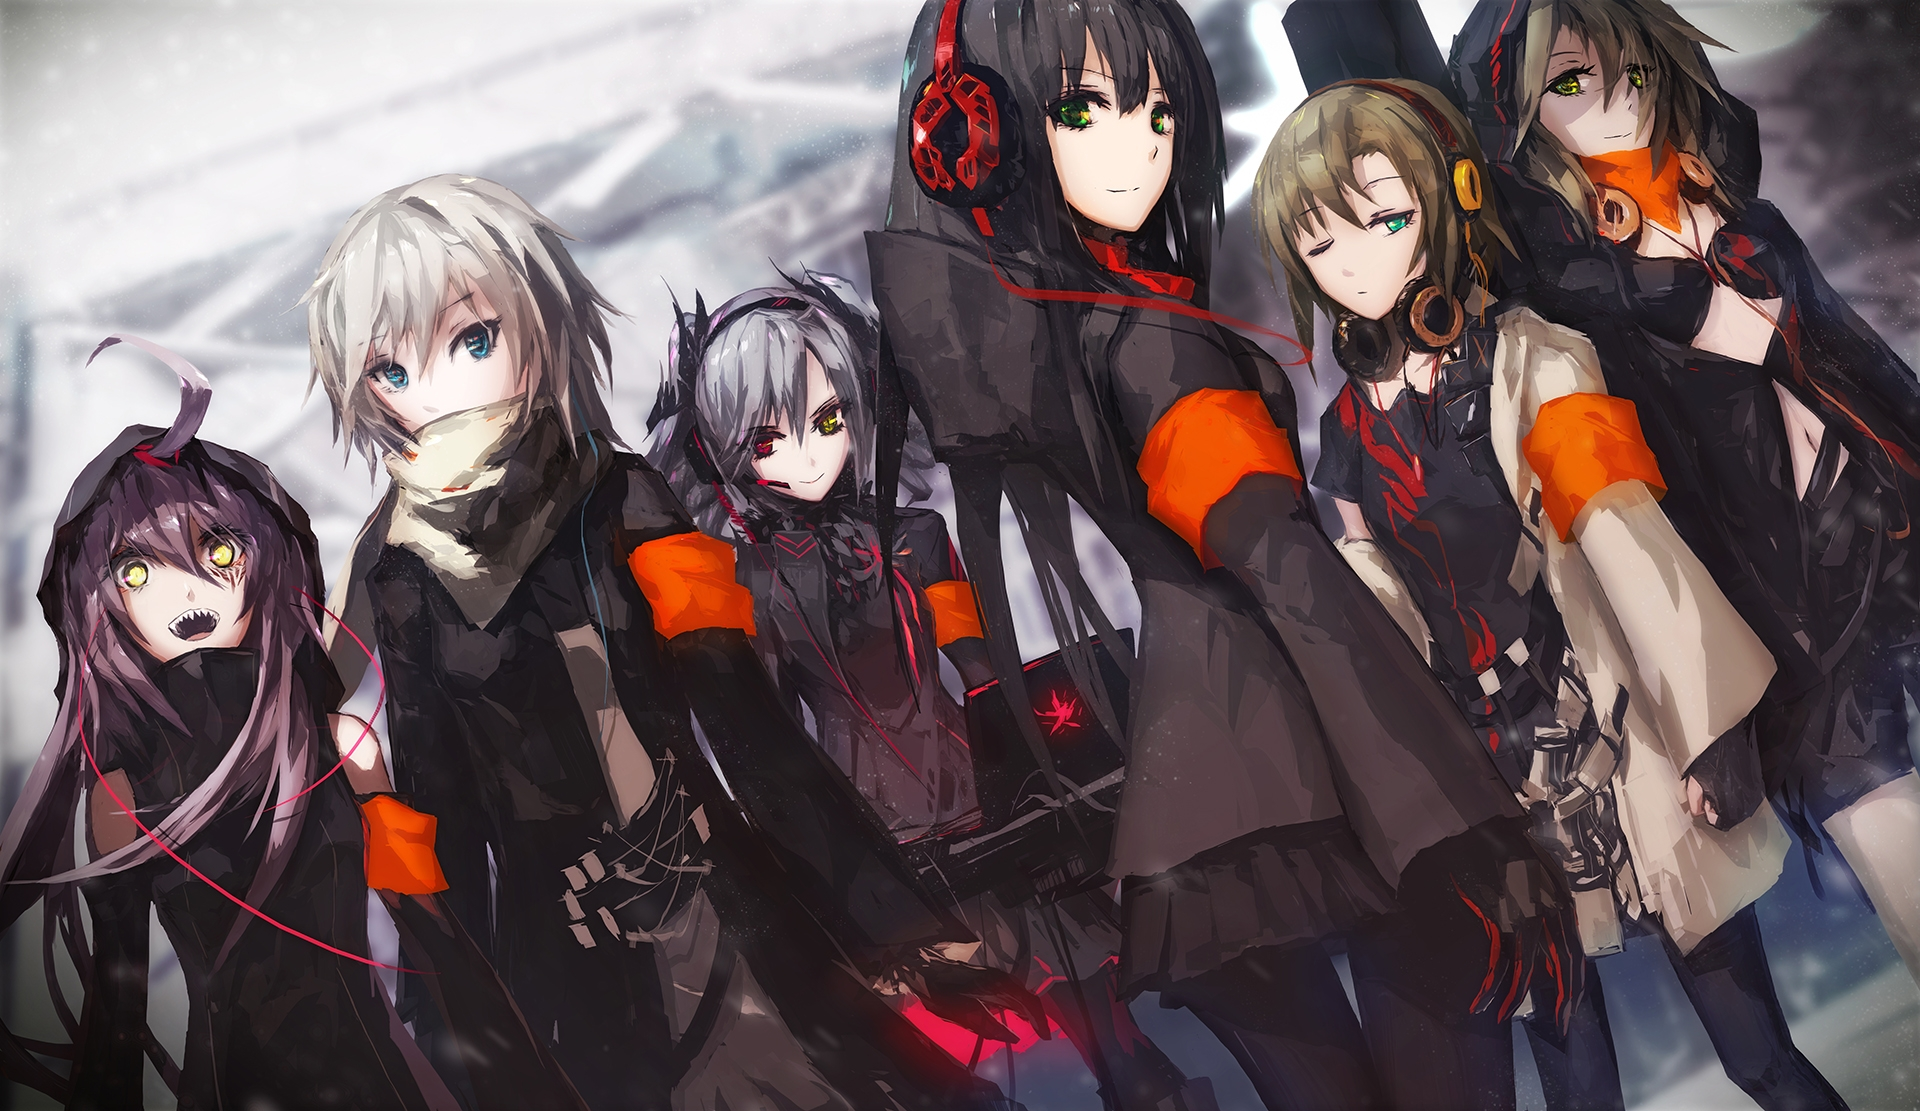 Anime Group Wallpaper Wallpaper Of The Week Headphone Girls 2 Randomness Thing